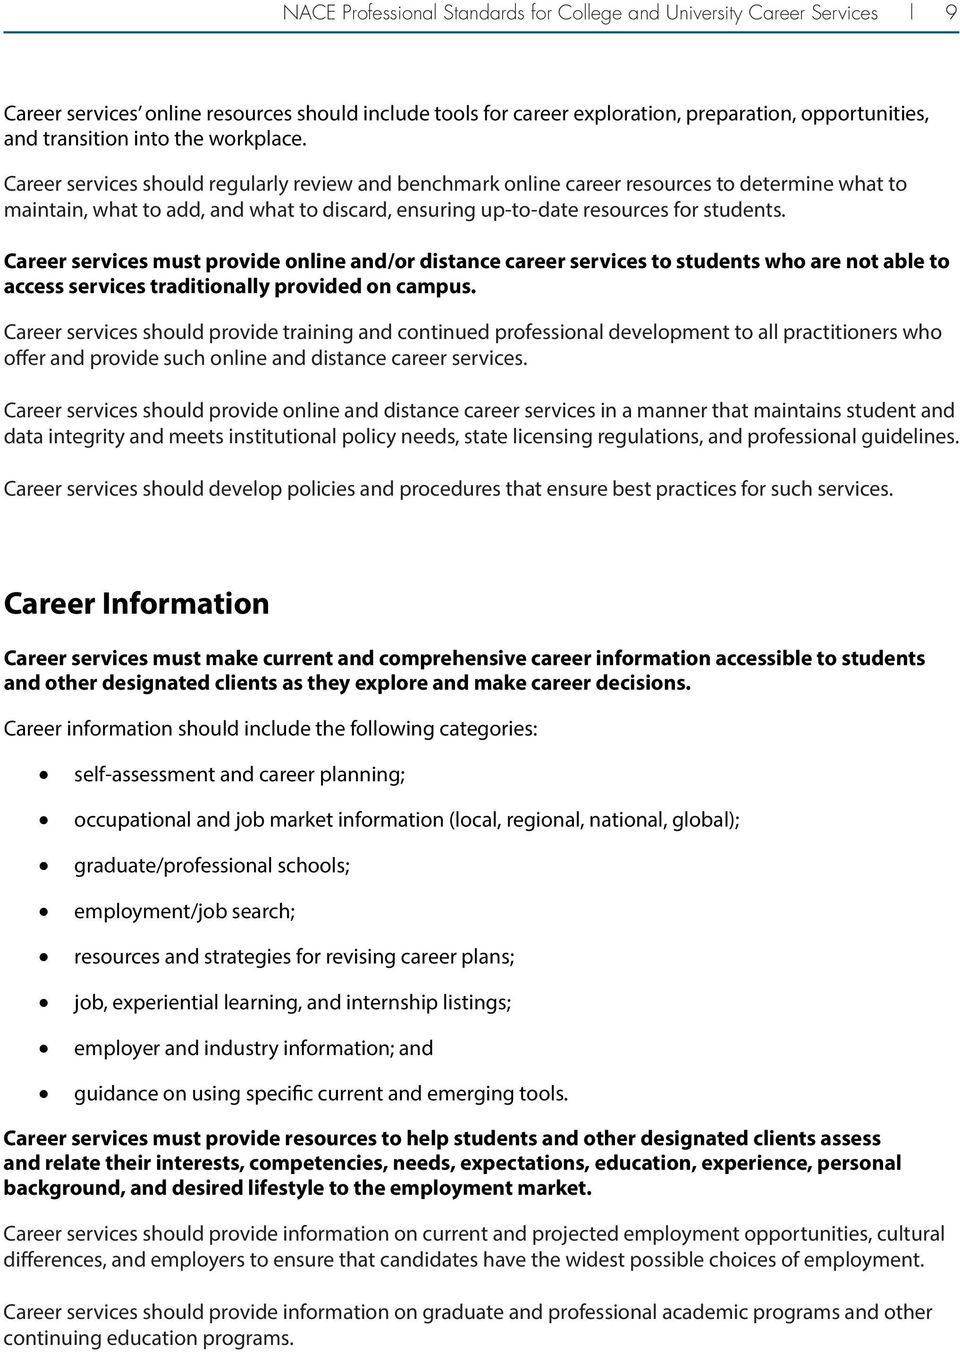 Career services should regularly review and benchmark online career resources to determine what to maintain, what to add, and what to discard, ensuring up-to-date resources for students.